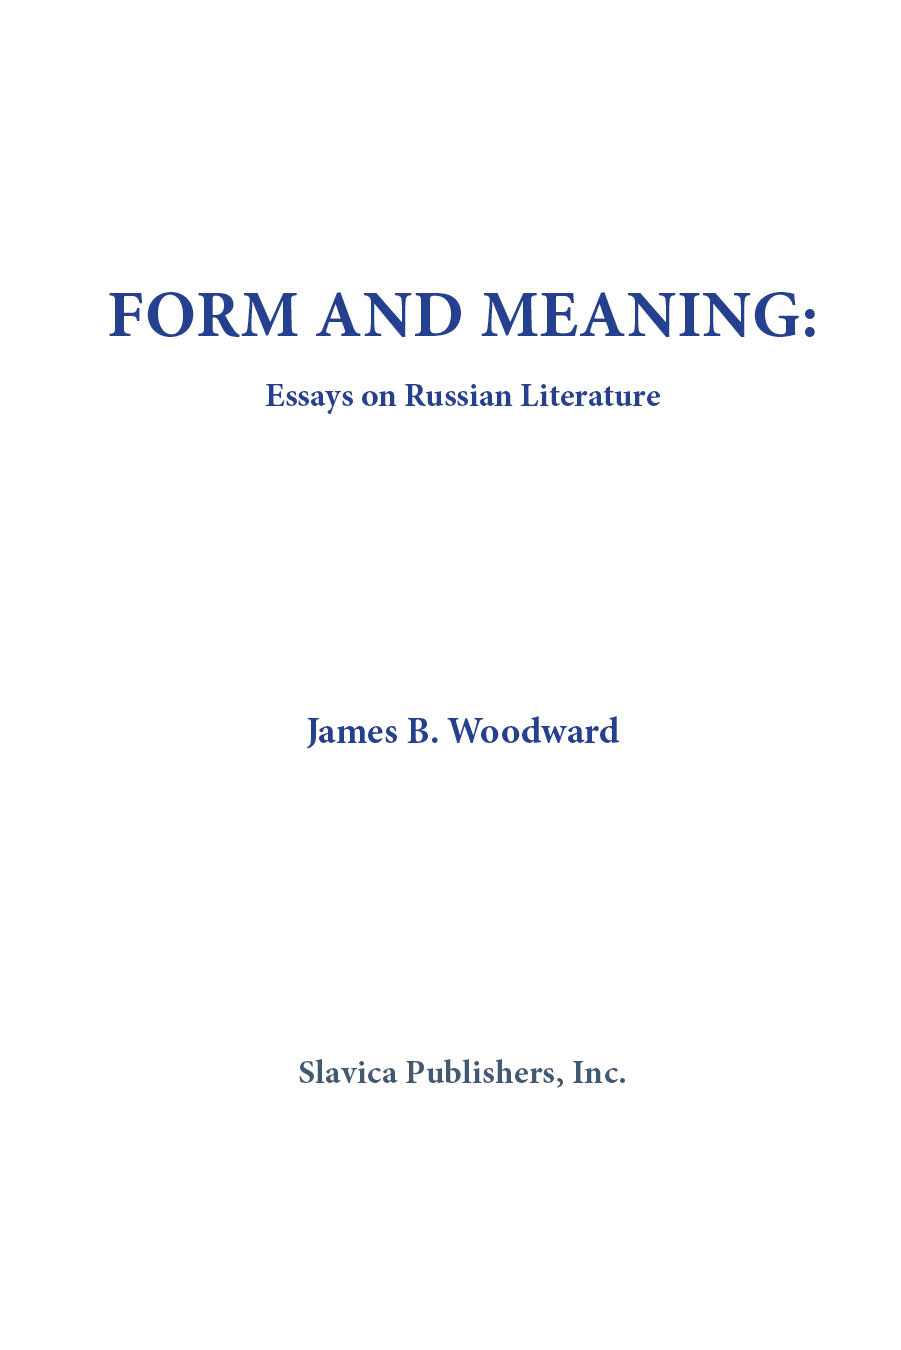 form and meaning essays on russian literature slavica publishers form and meaning essays on russian literature